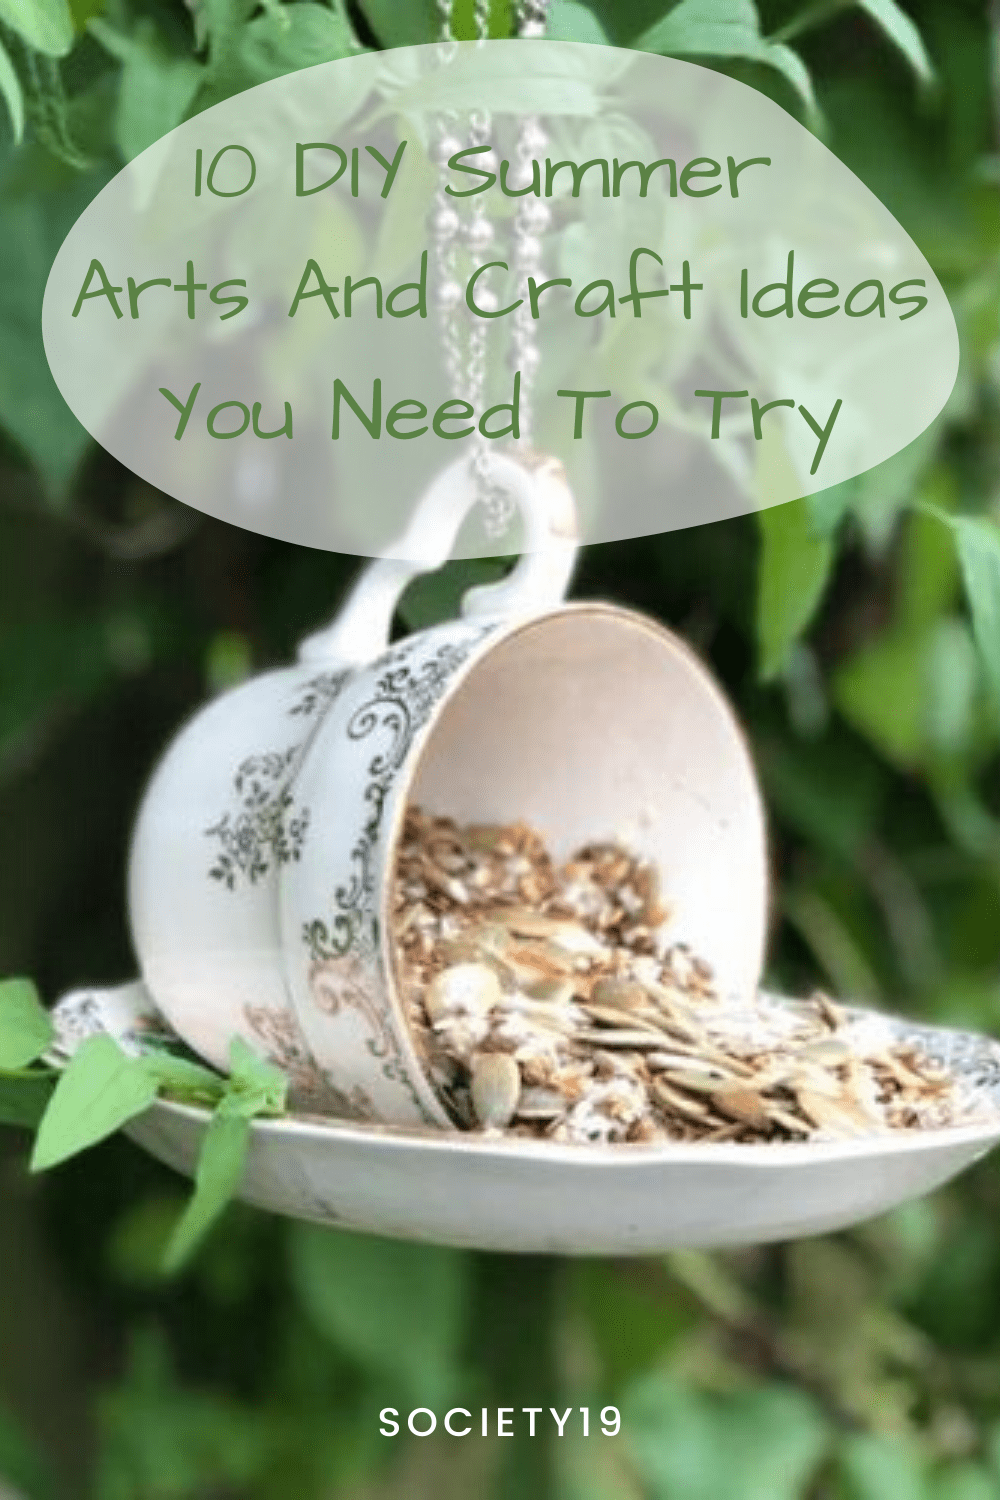 10 DIY Summer Arts And Craft Ideas You Need To Try